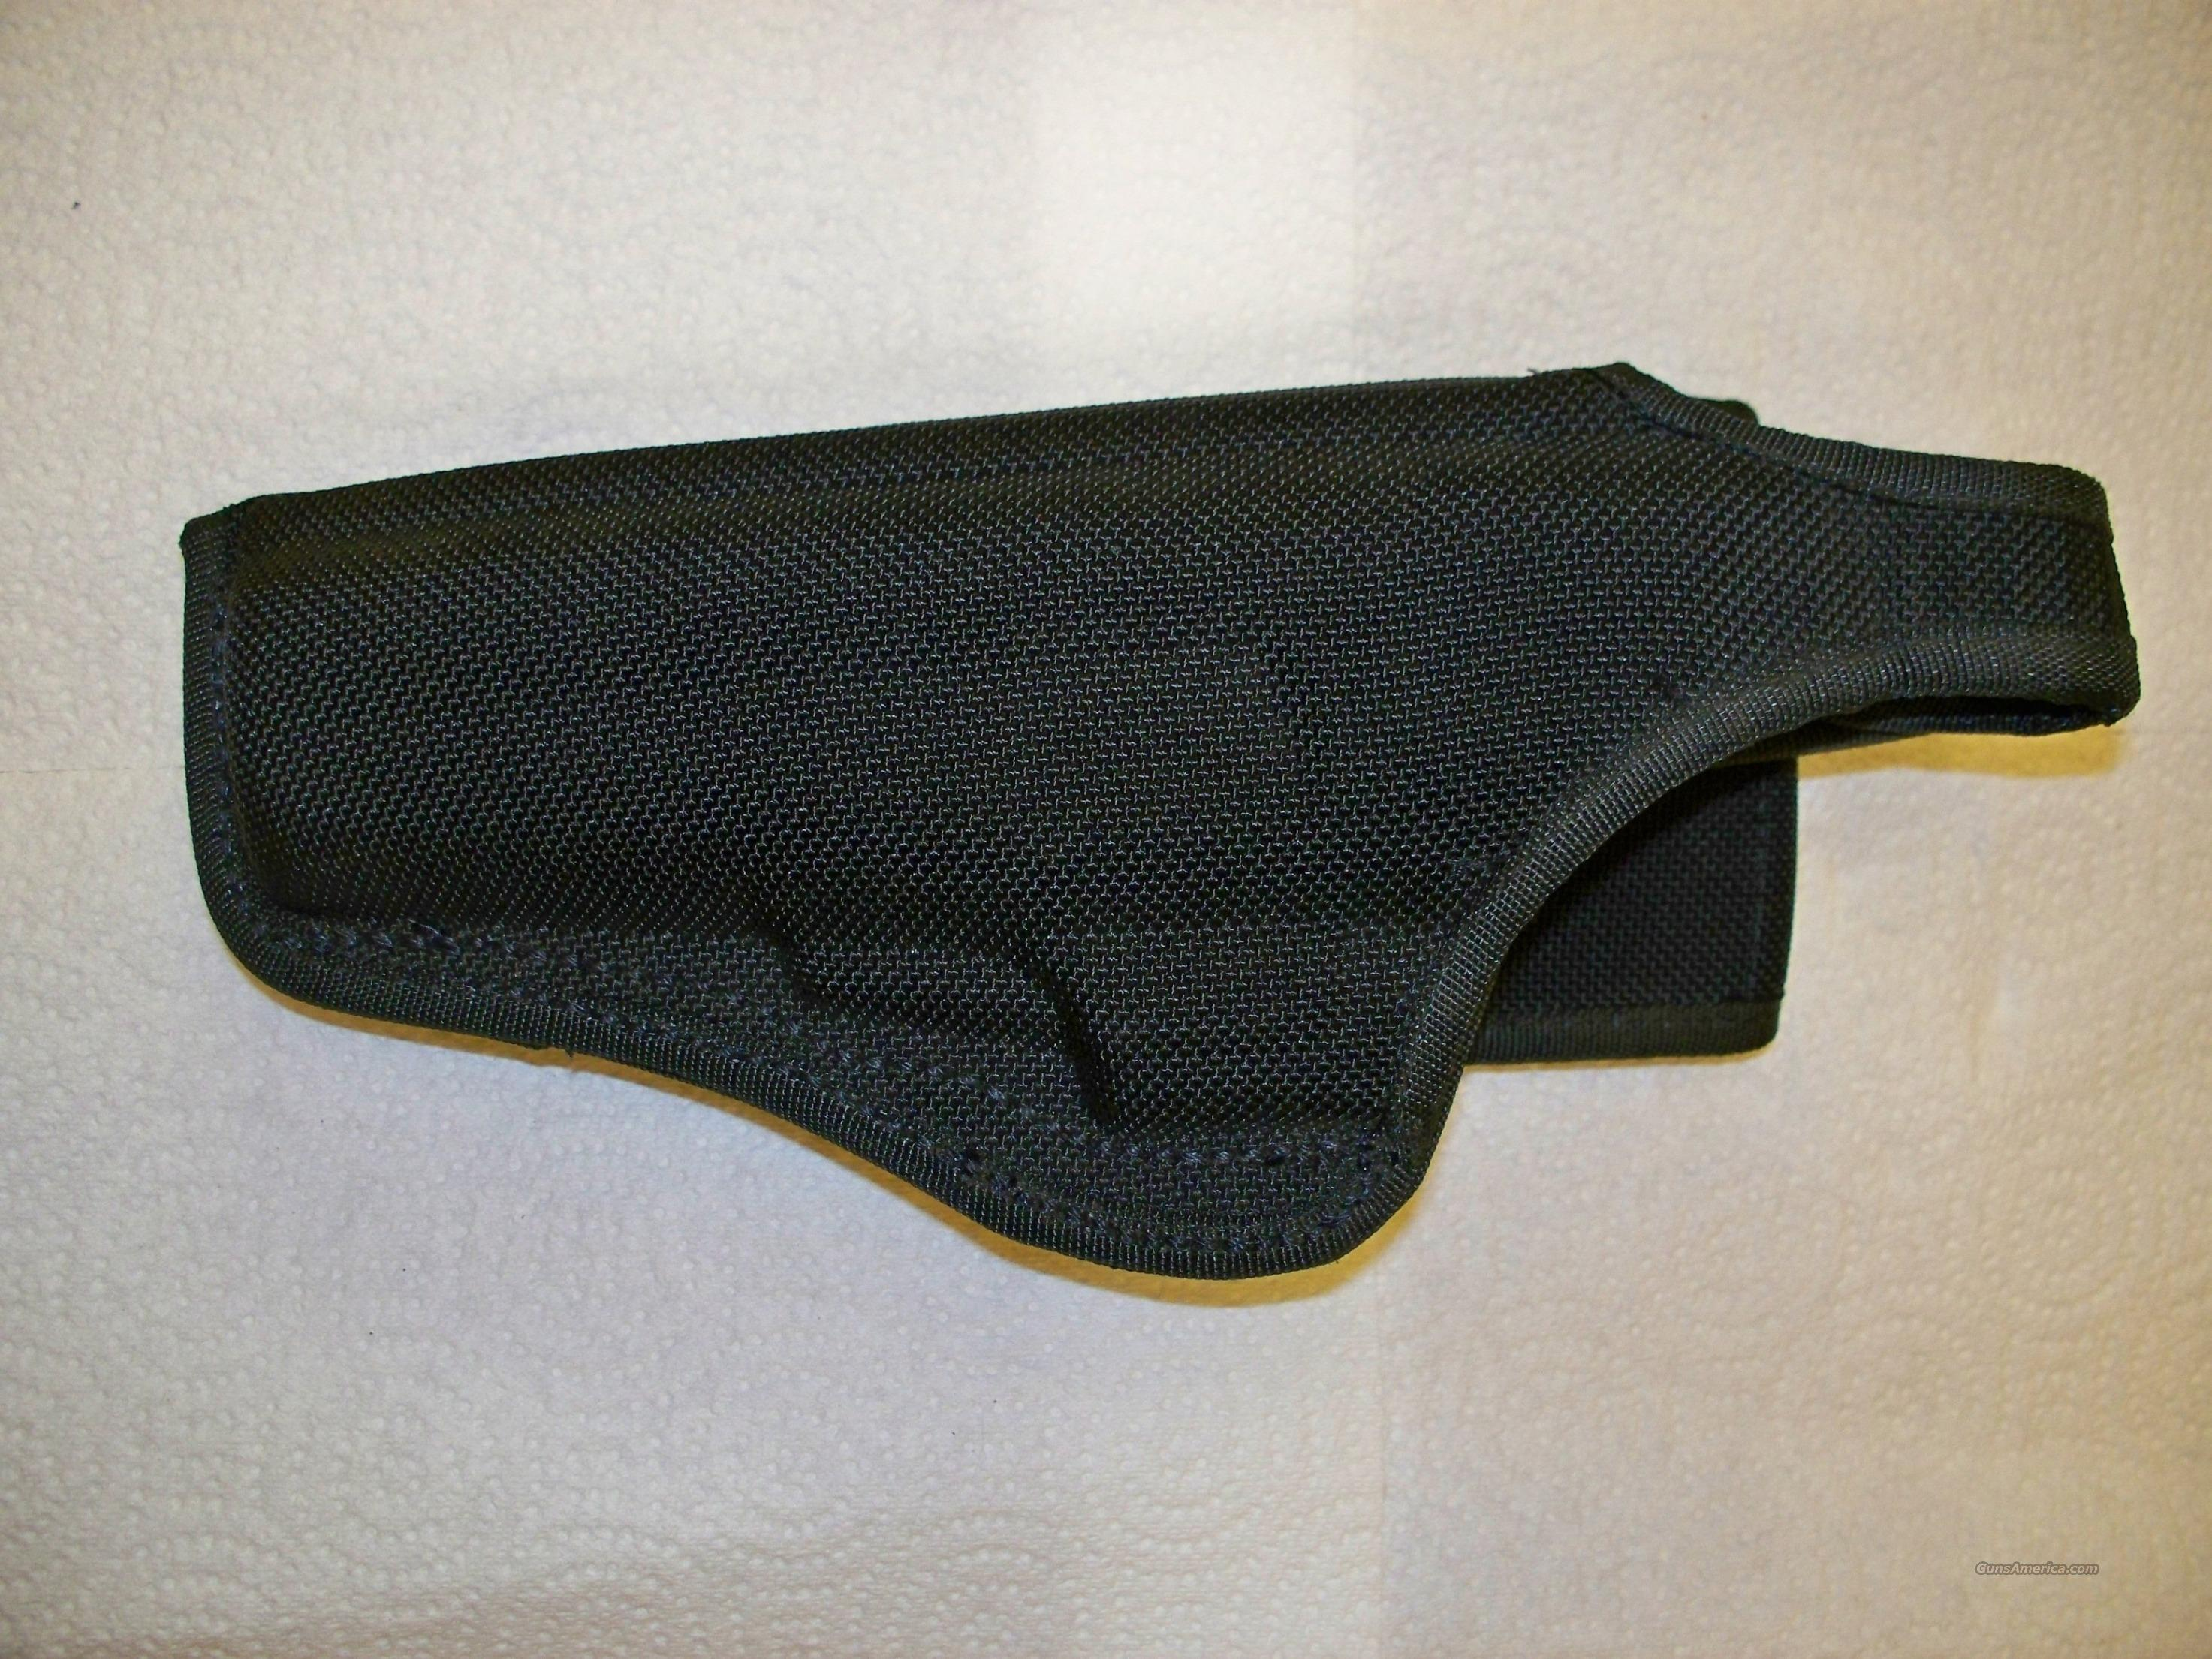 BIANCHI Accumold Defender Holster Lefthand  Non-Guns > Holsters and Gunleather > Police Belts/Holsters